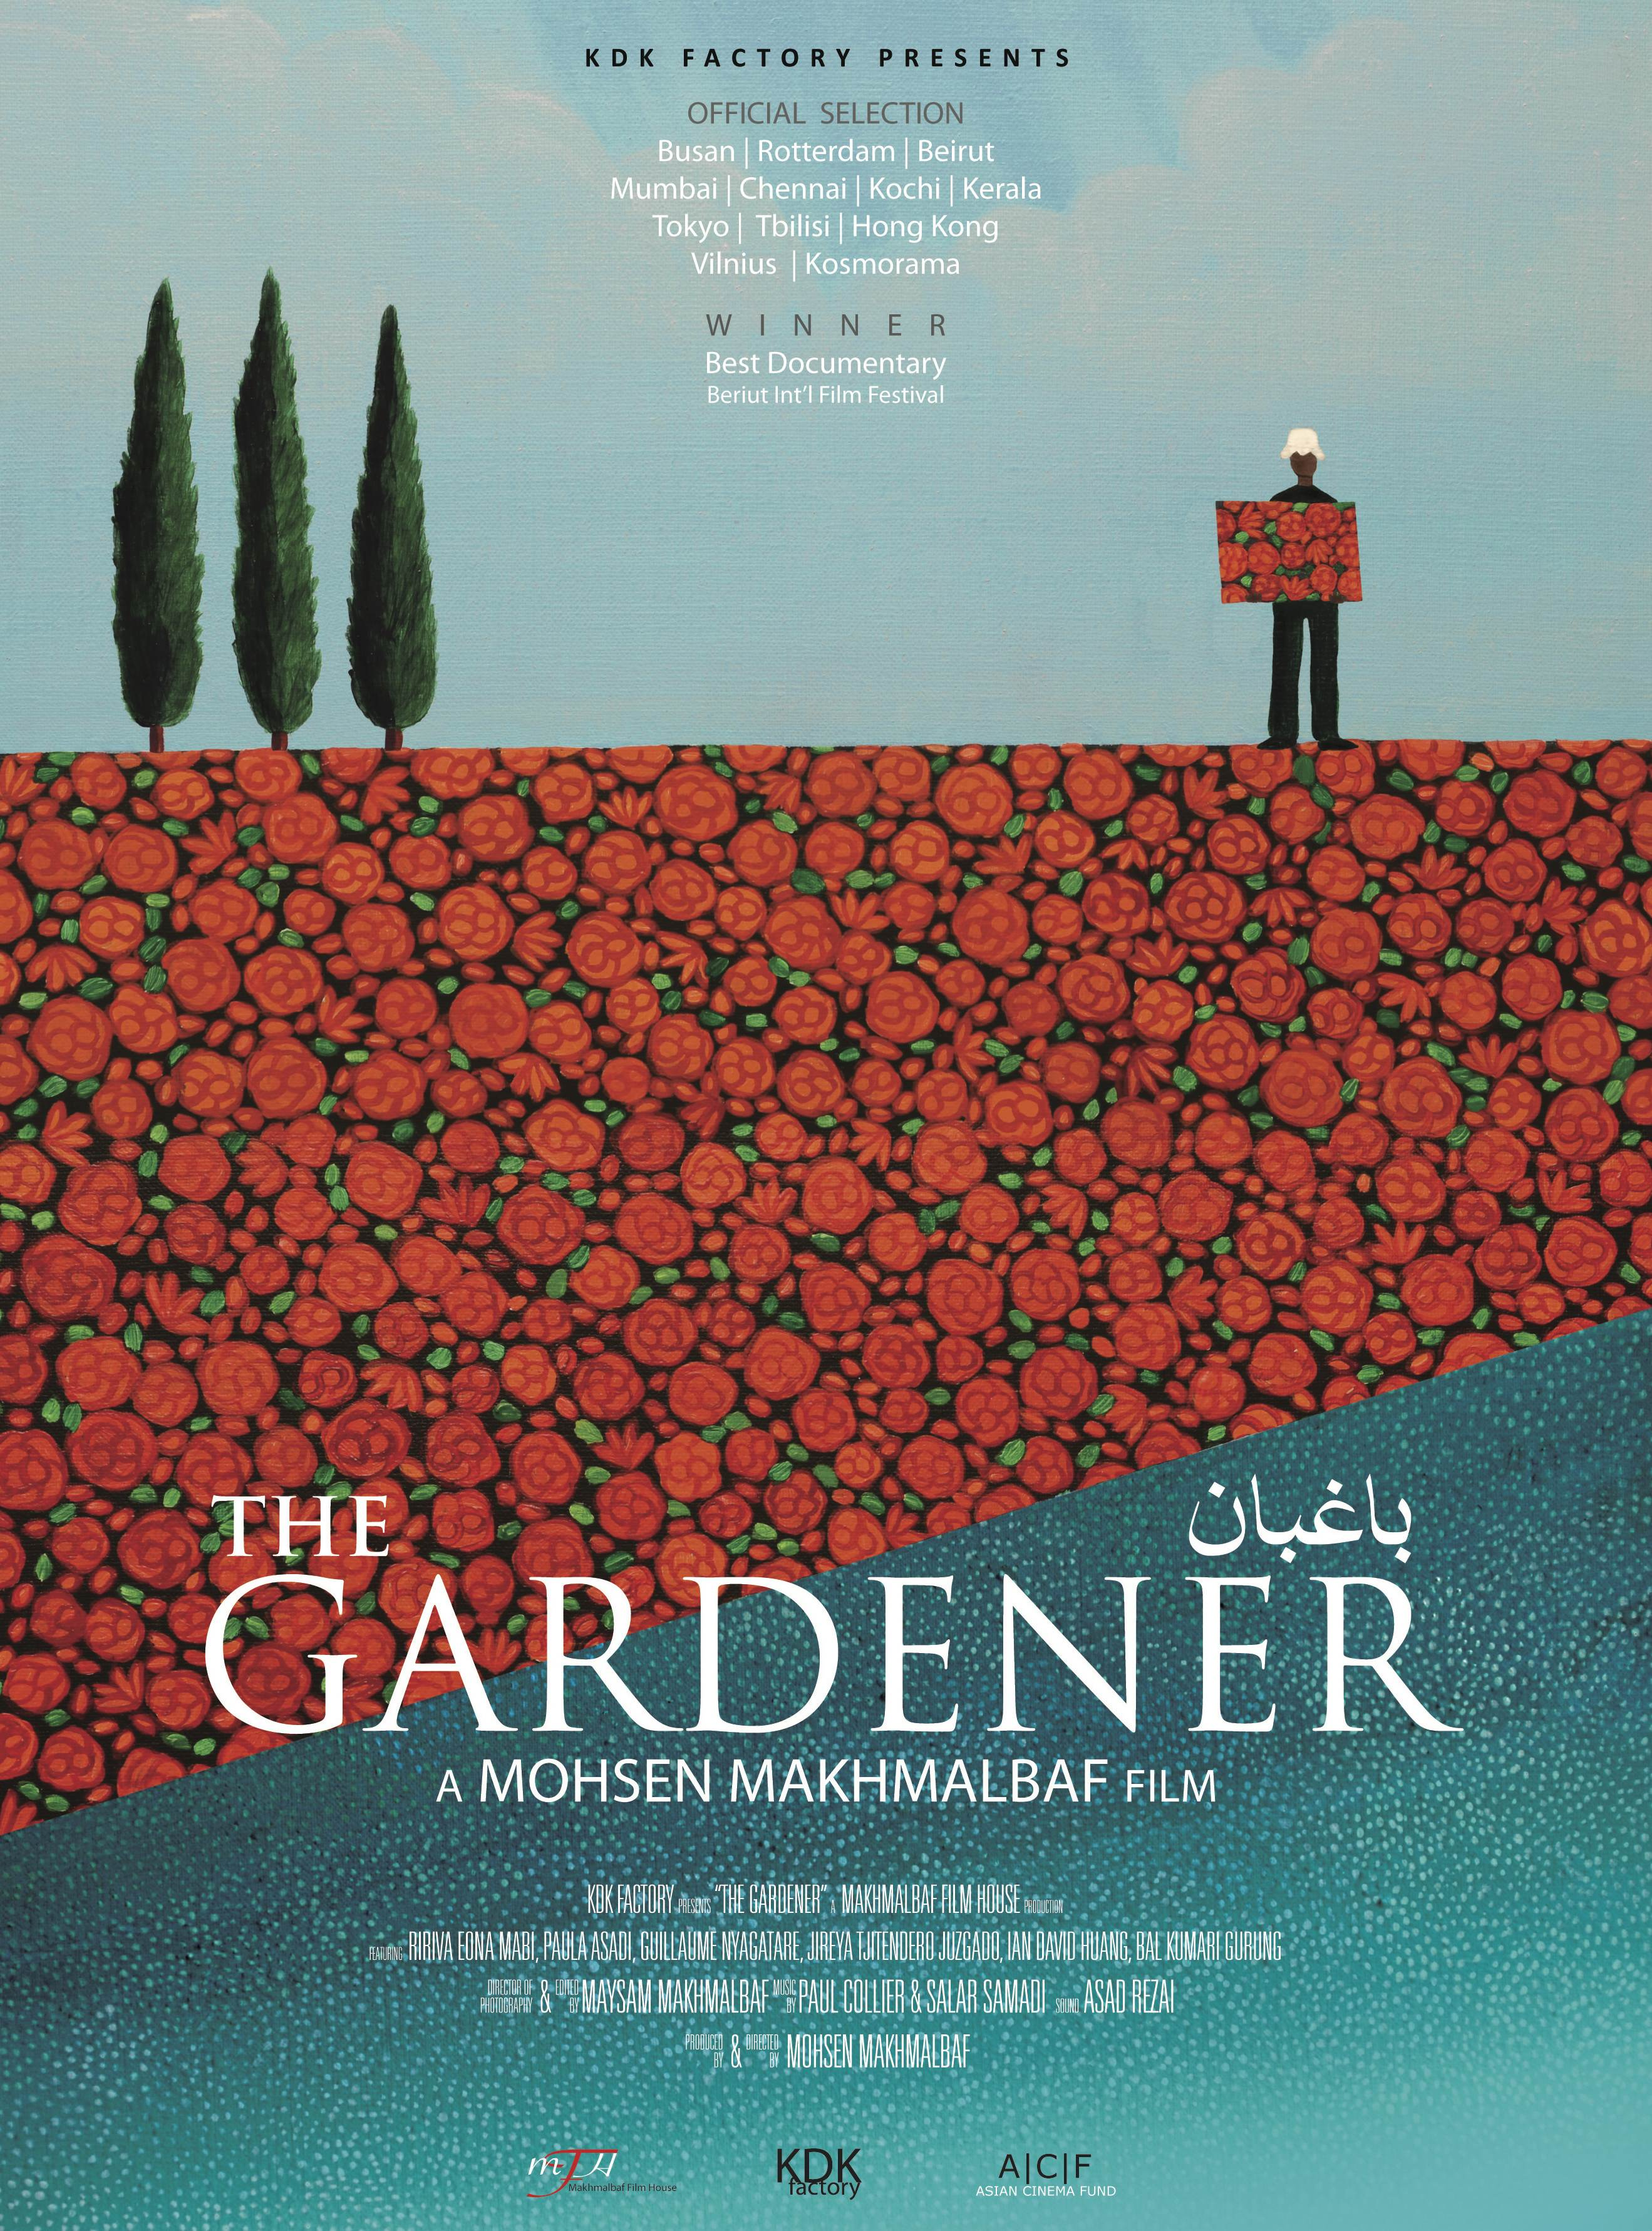 Mohsen Makhmalbafs The Gardener To Compete For Best Documentary At 86th Academy Awards